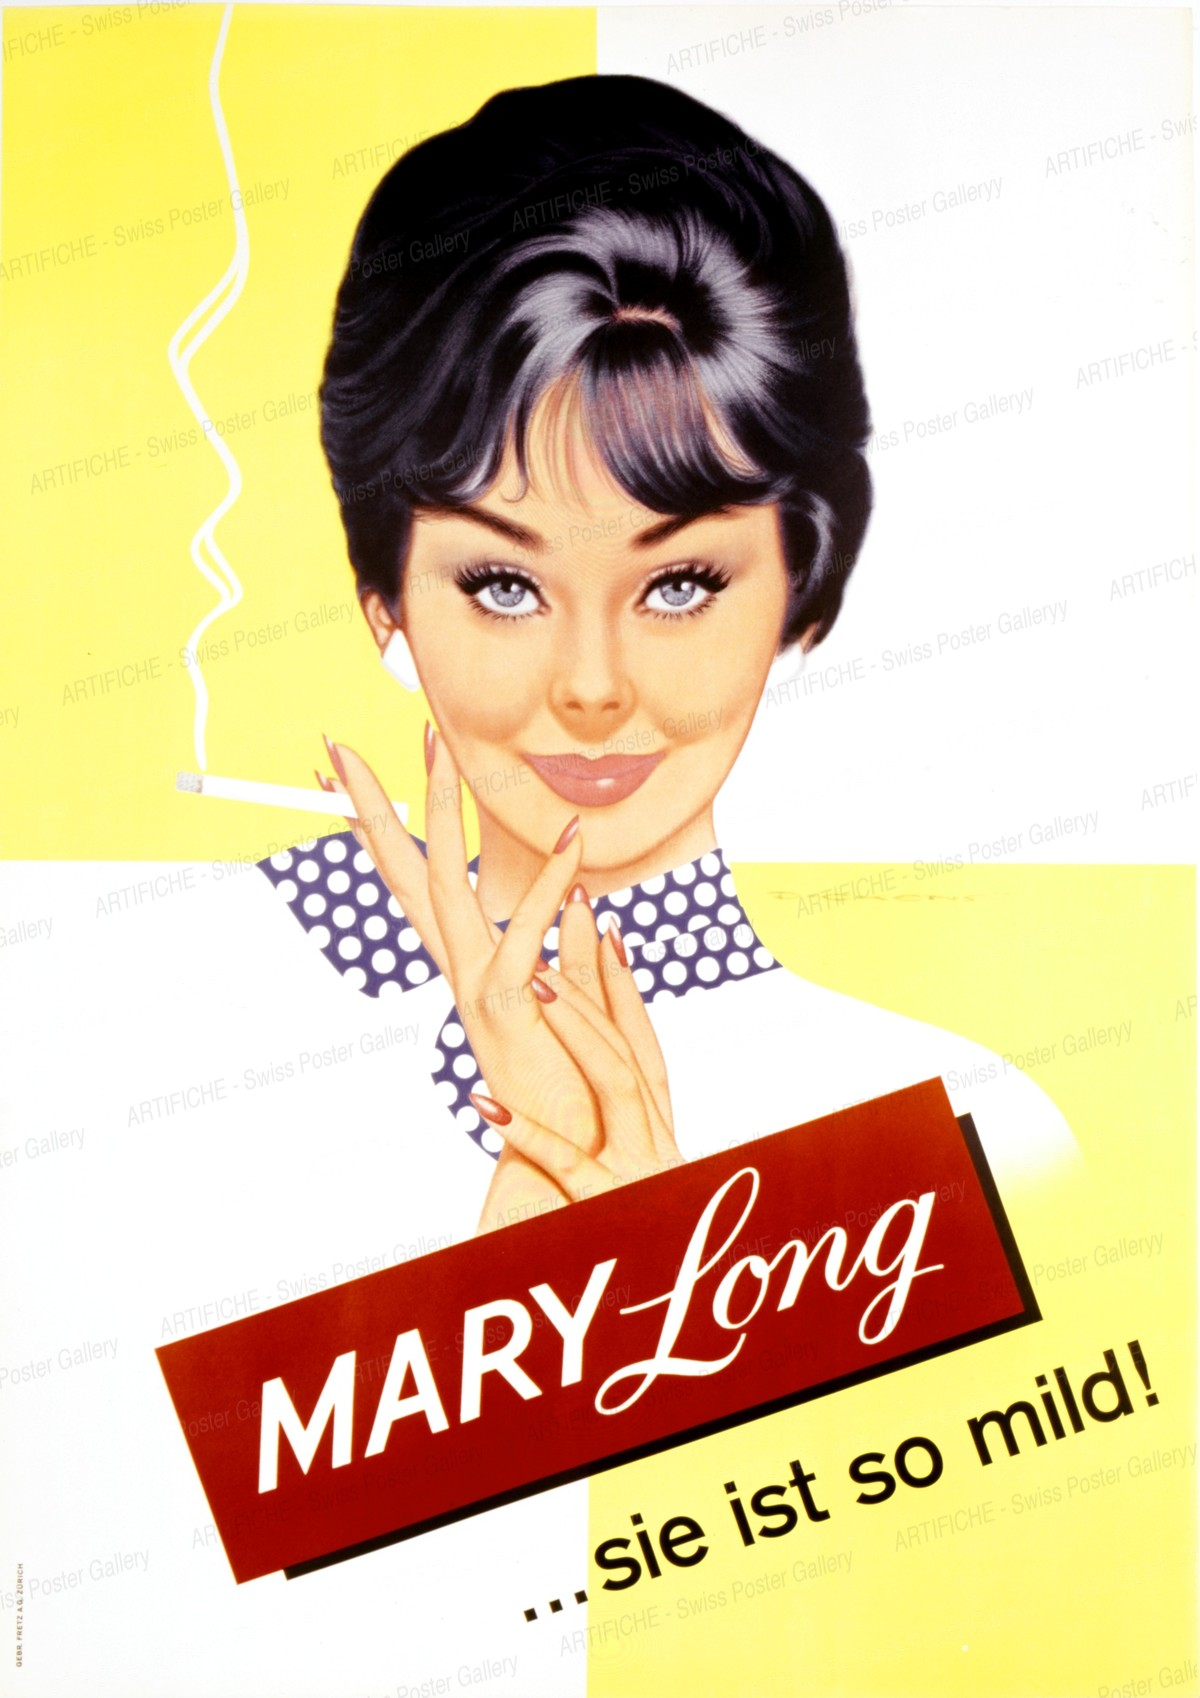 MARY Long – sie ist so mild, Archie Dickens